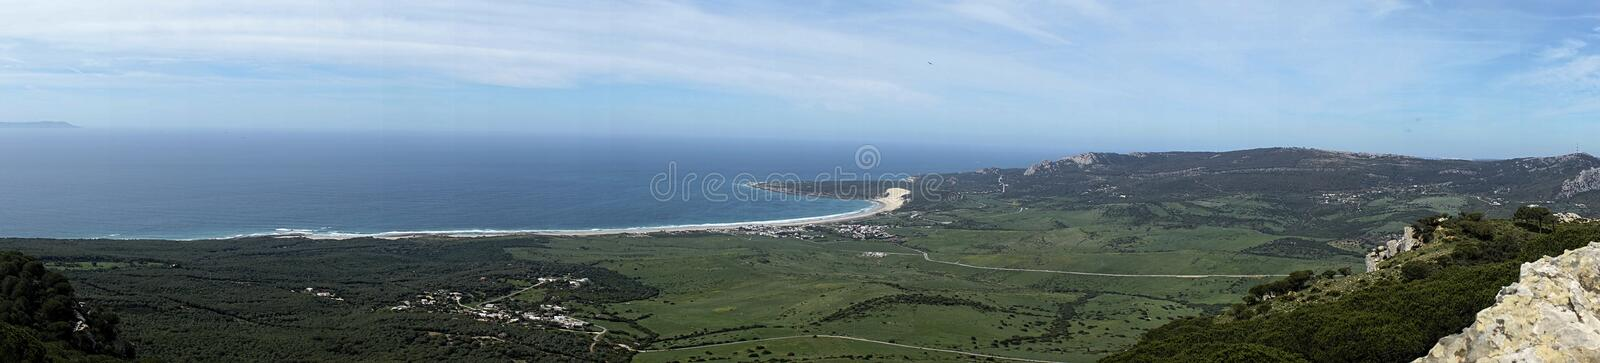 Beautiful unspoiled beach of the Coast of Tarifa in the province of cadiz, andalusia, spain. Panoramic view of the coast of Bologna, Tarifa royalty free stock photos